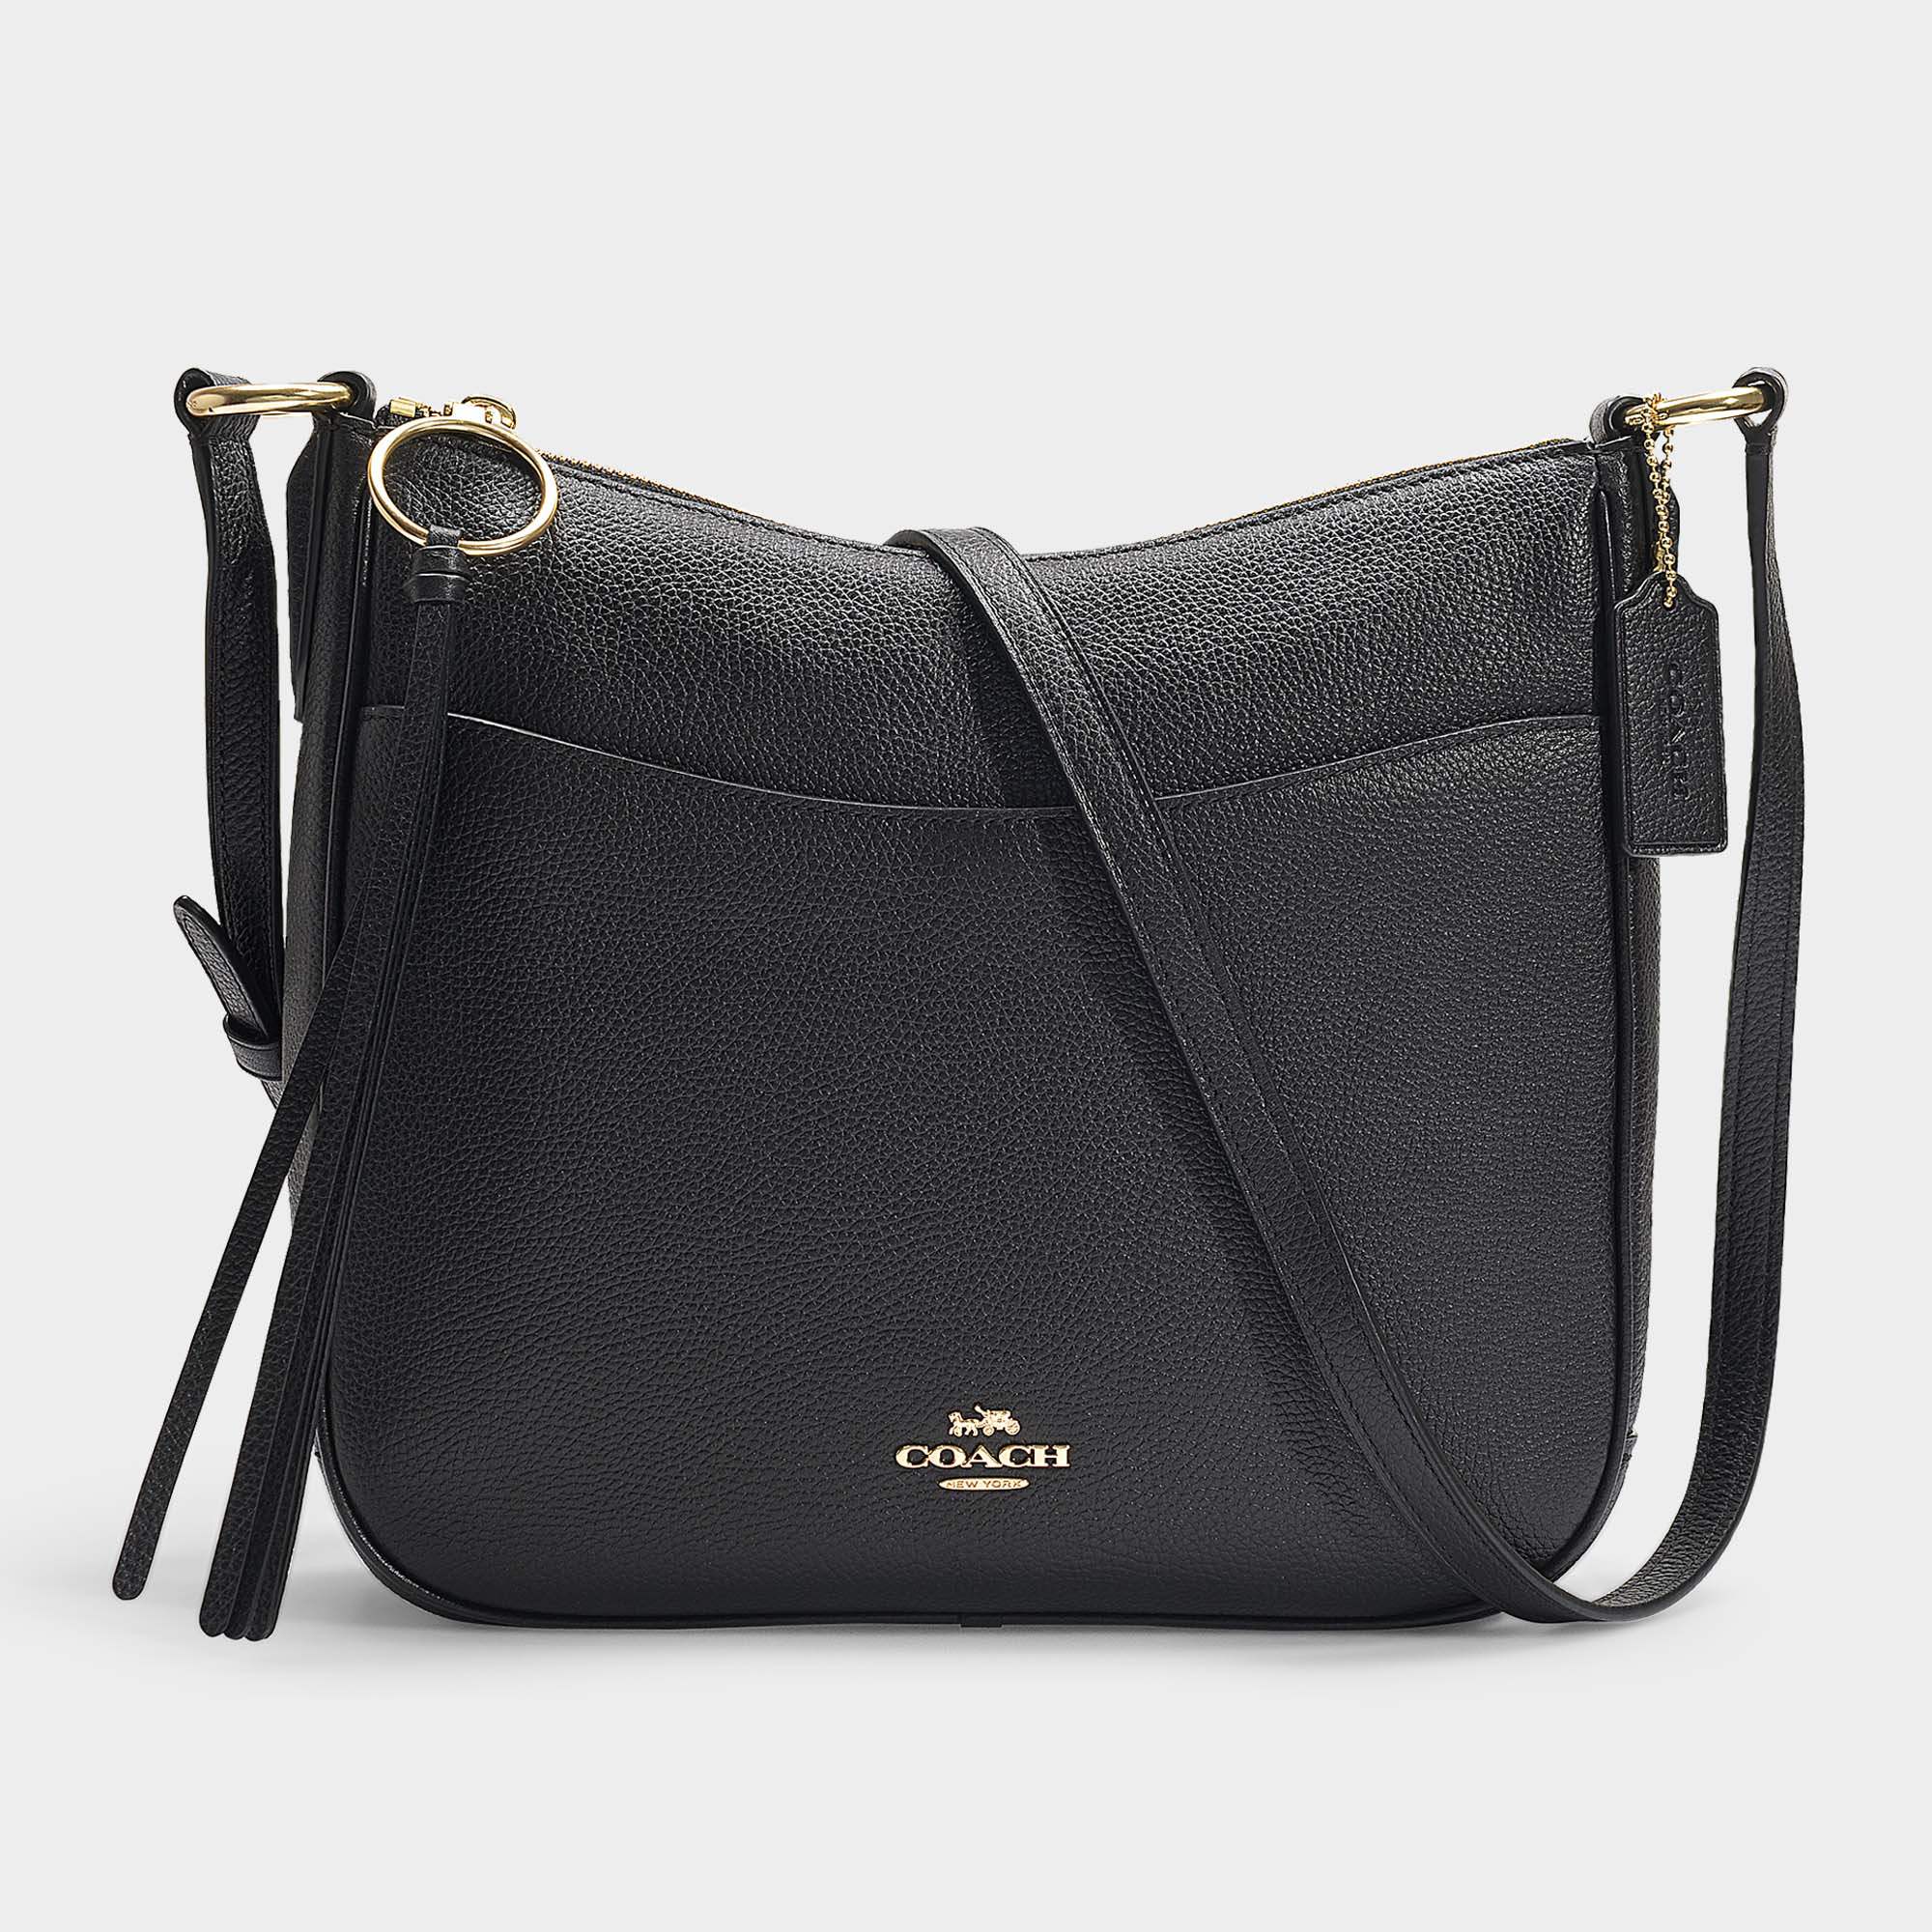 a4ff1cd07764aa Coach | Polished Pebble Leather Chaise Crossbody In Black | ModeSens